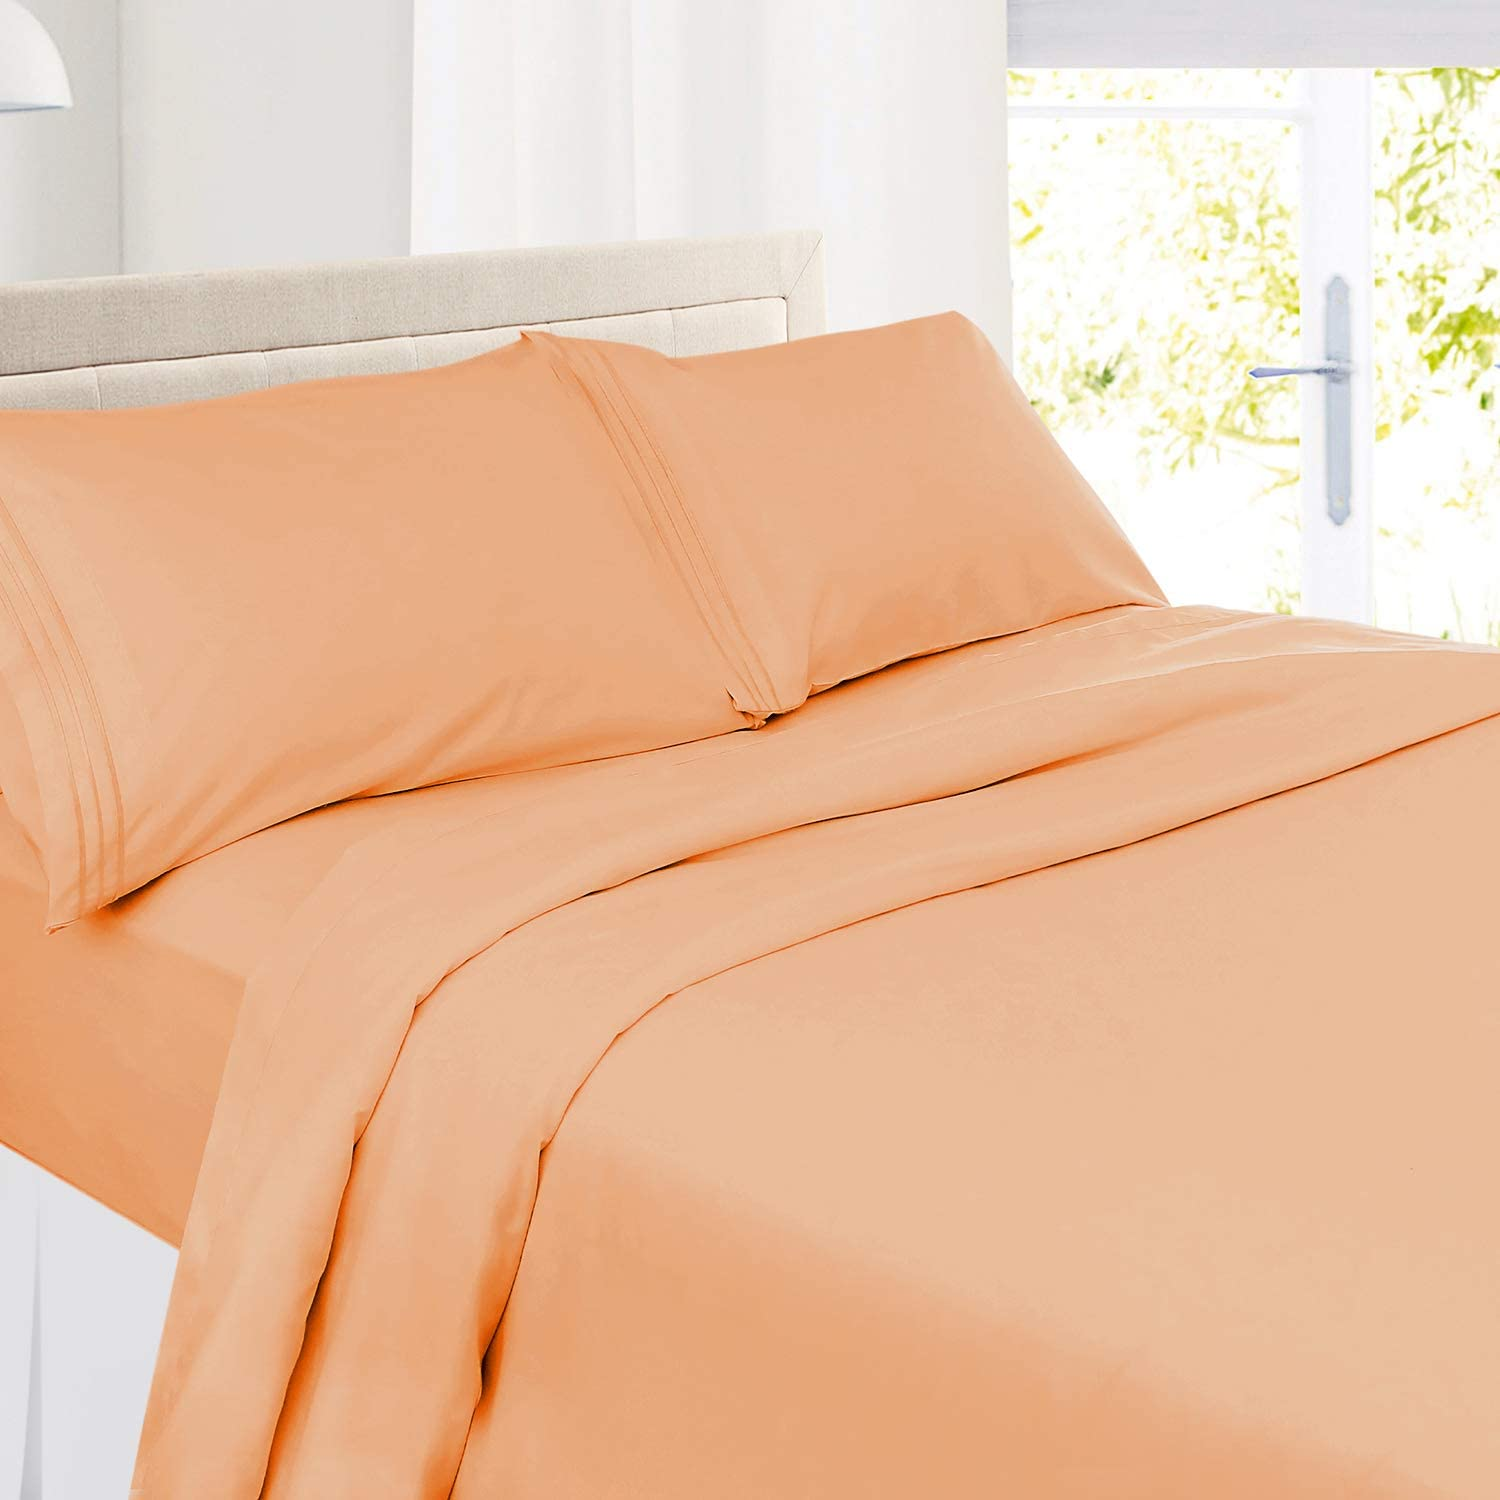 Apricot Buff Orange Set of 2 Nestl Bedding Solid Microfiber King 20 x 40 Inches Pillowcases